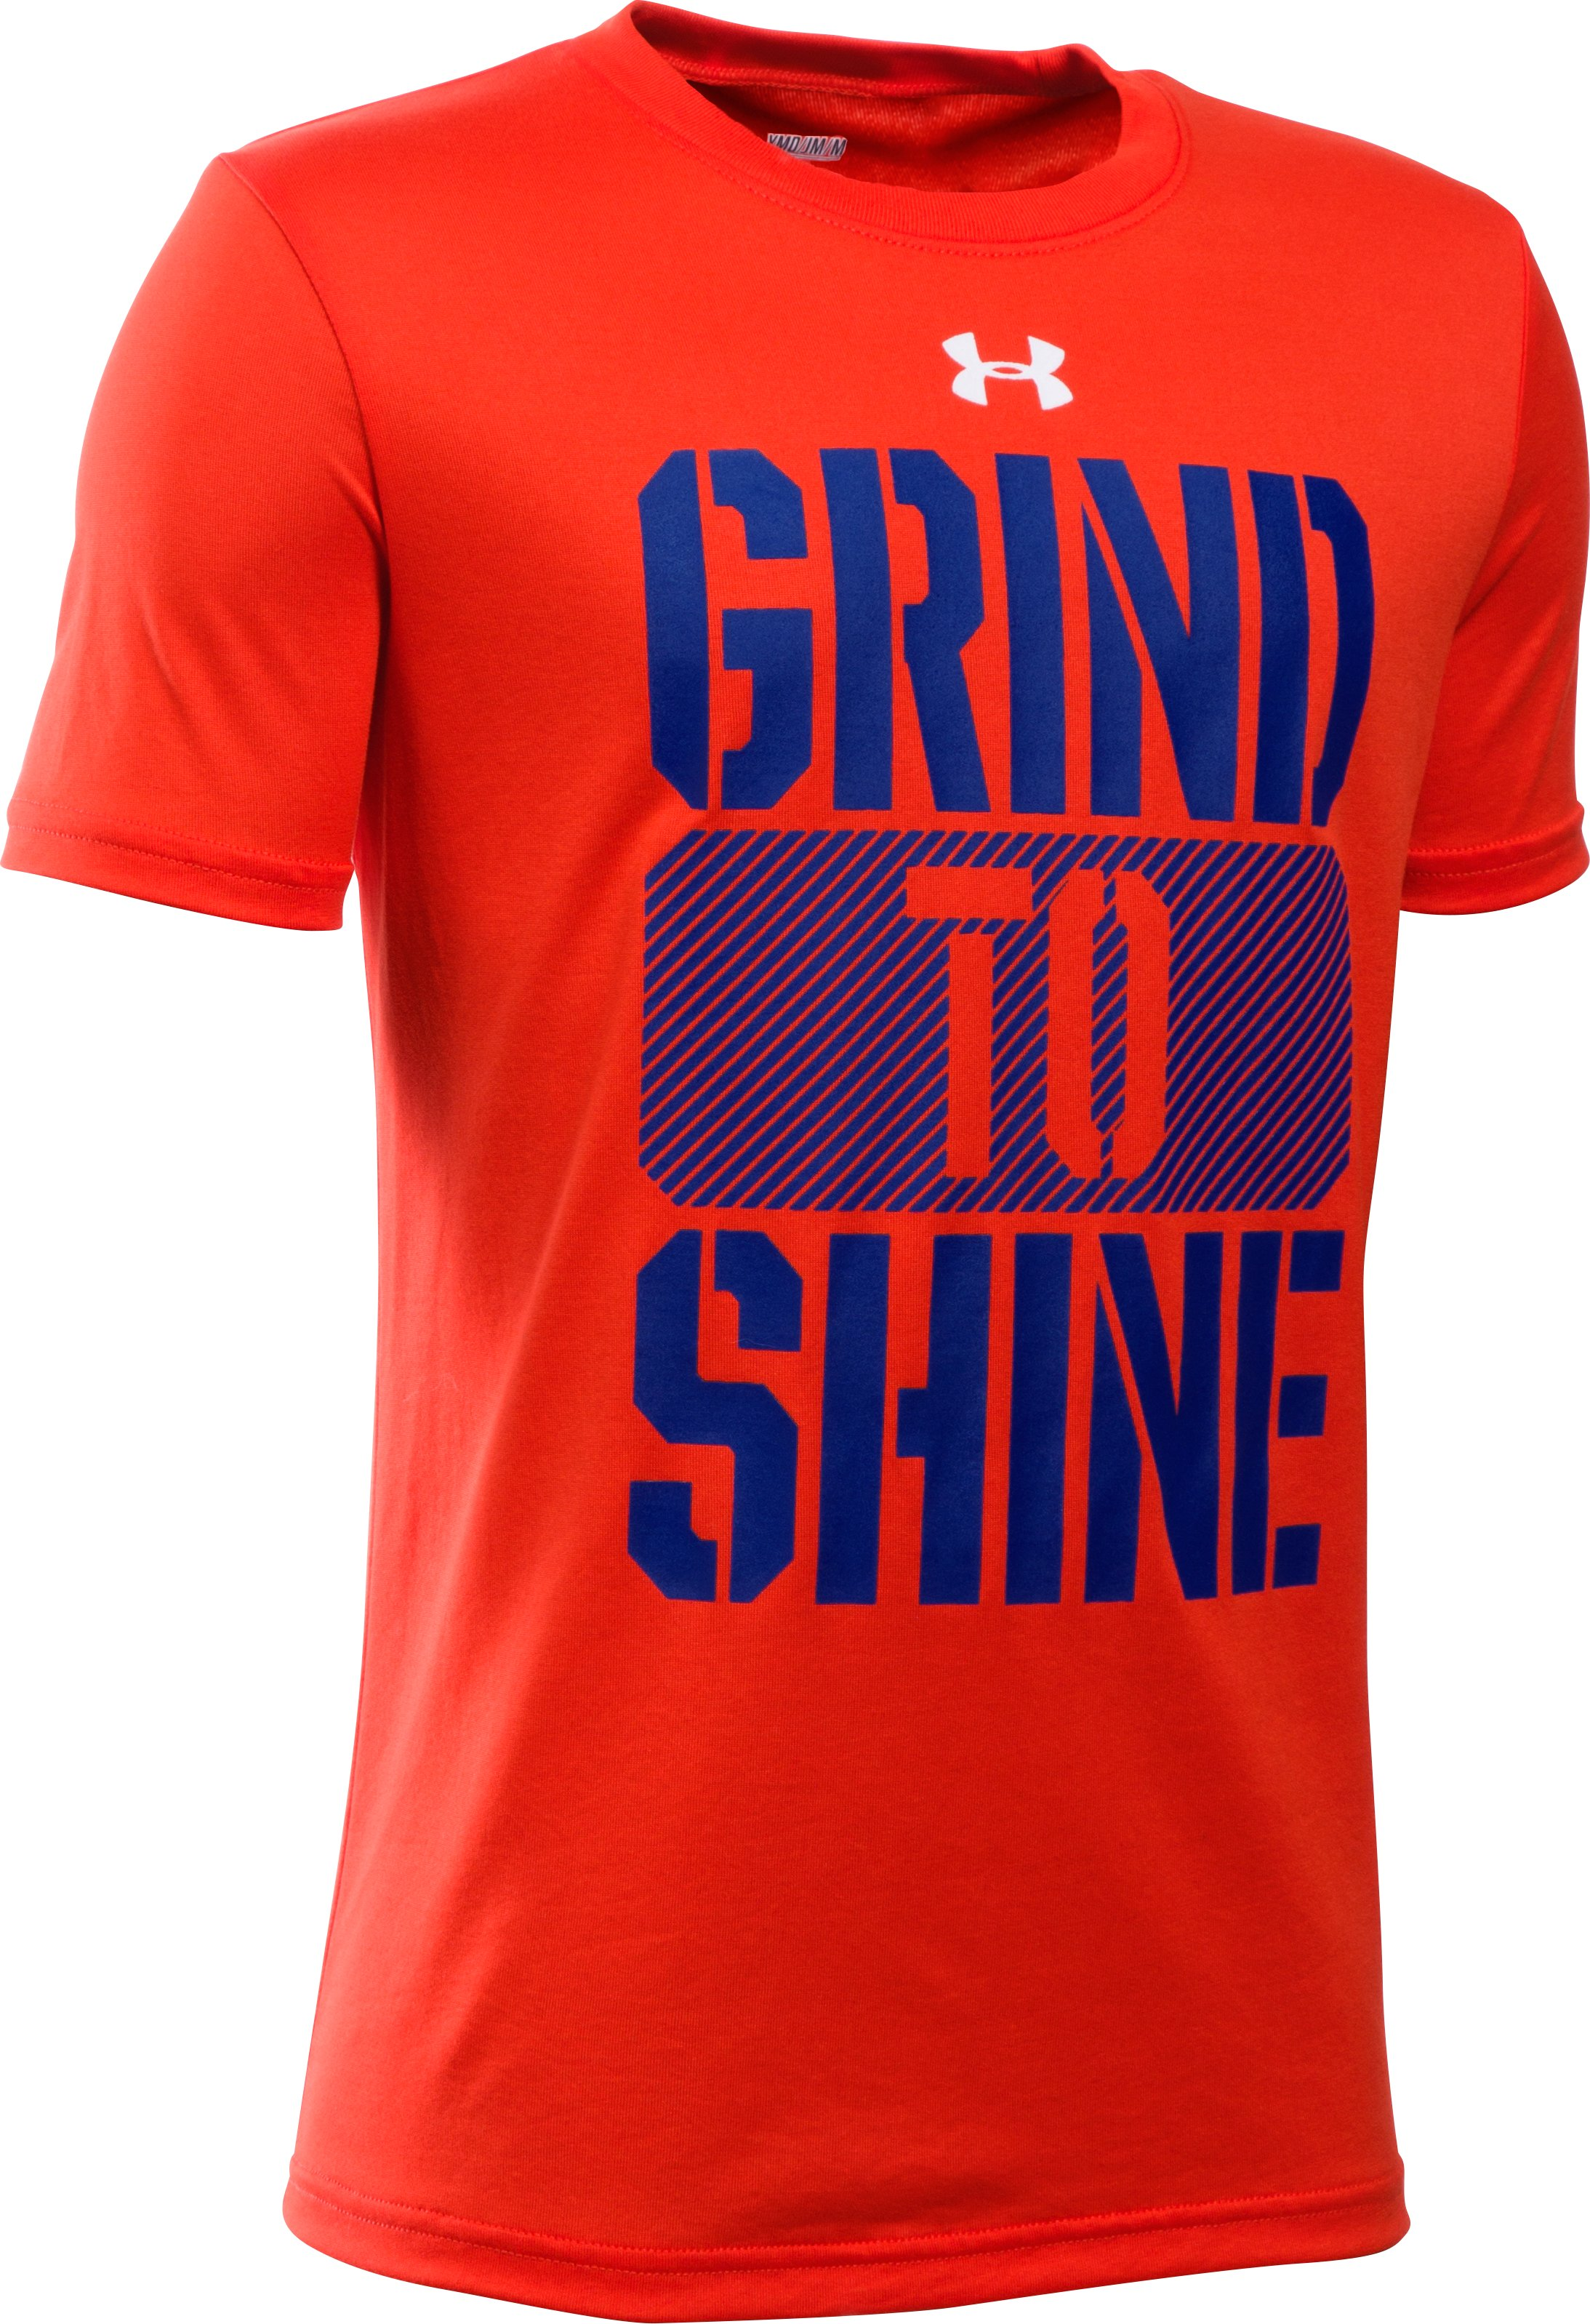 Boys' UA Grind To Shine T-Shirt, Volcano, undefined